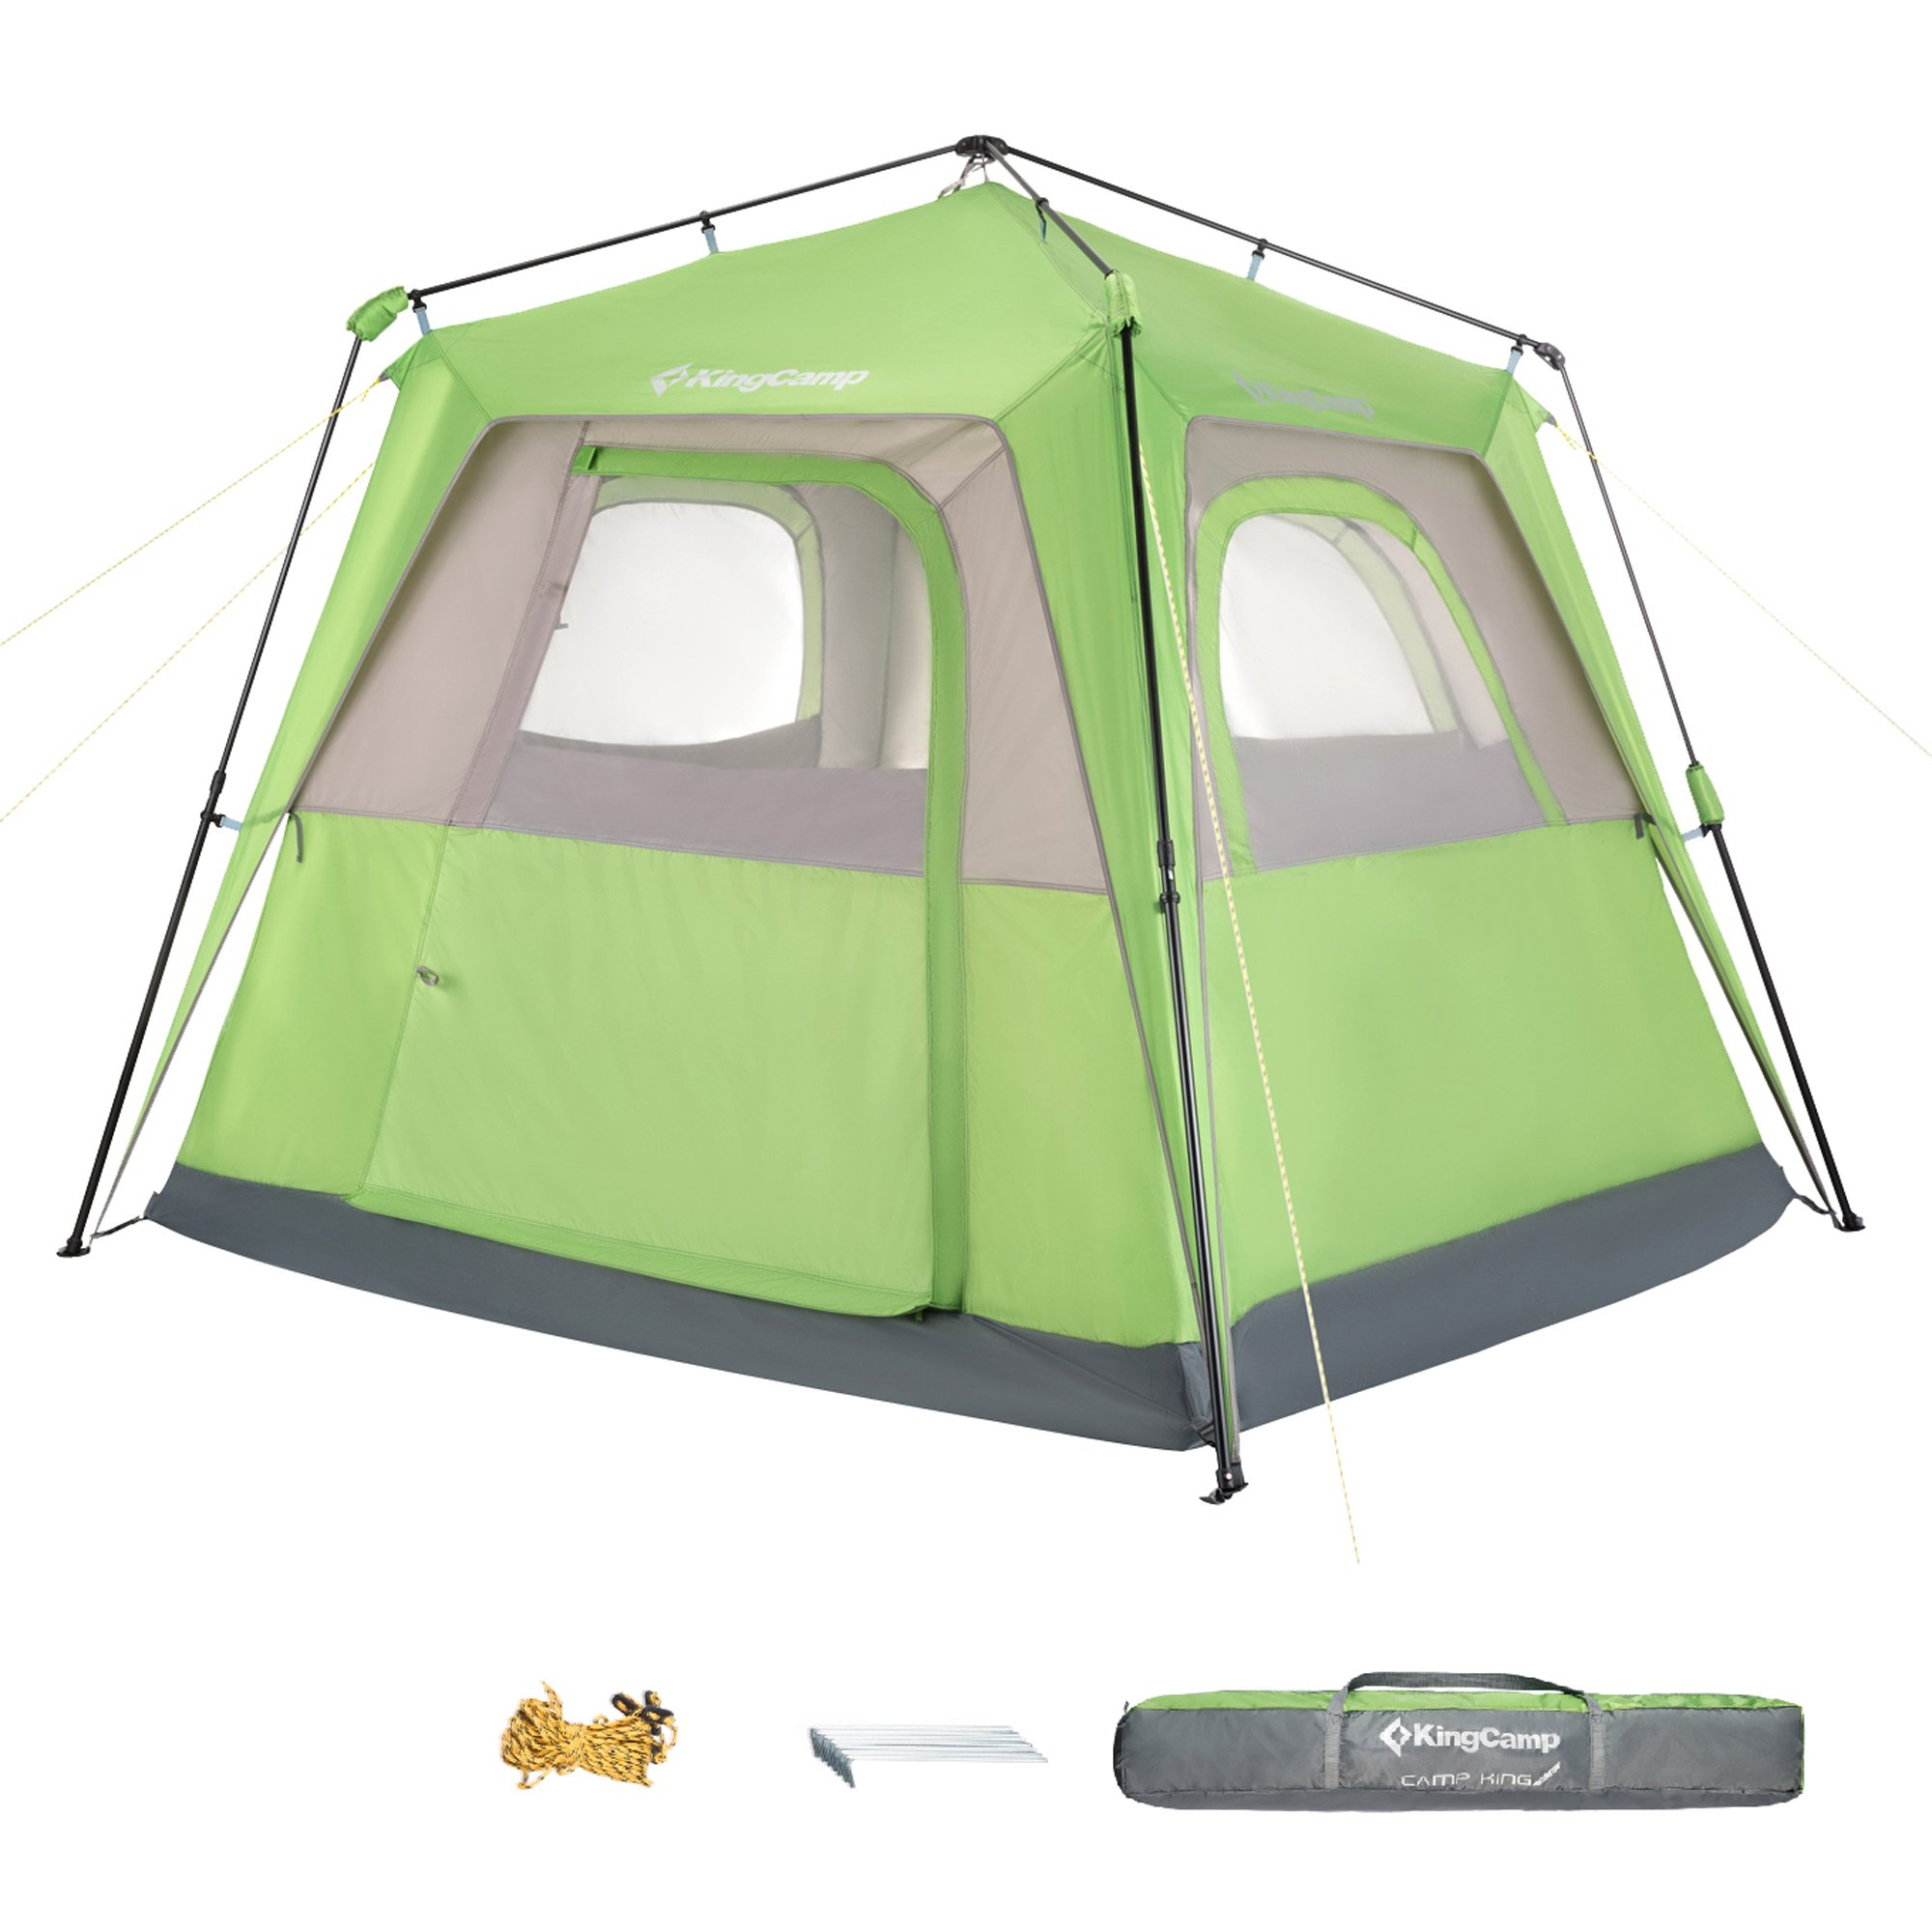 KingCamp Easy Up Double Layer Multi Purpose 3-4 Person UPF 50+ Breathable Waterproof Canopy Camping Tent